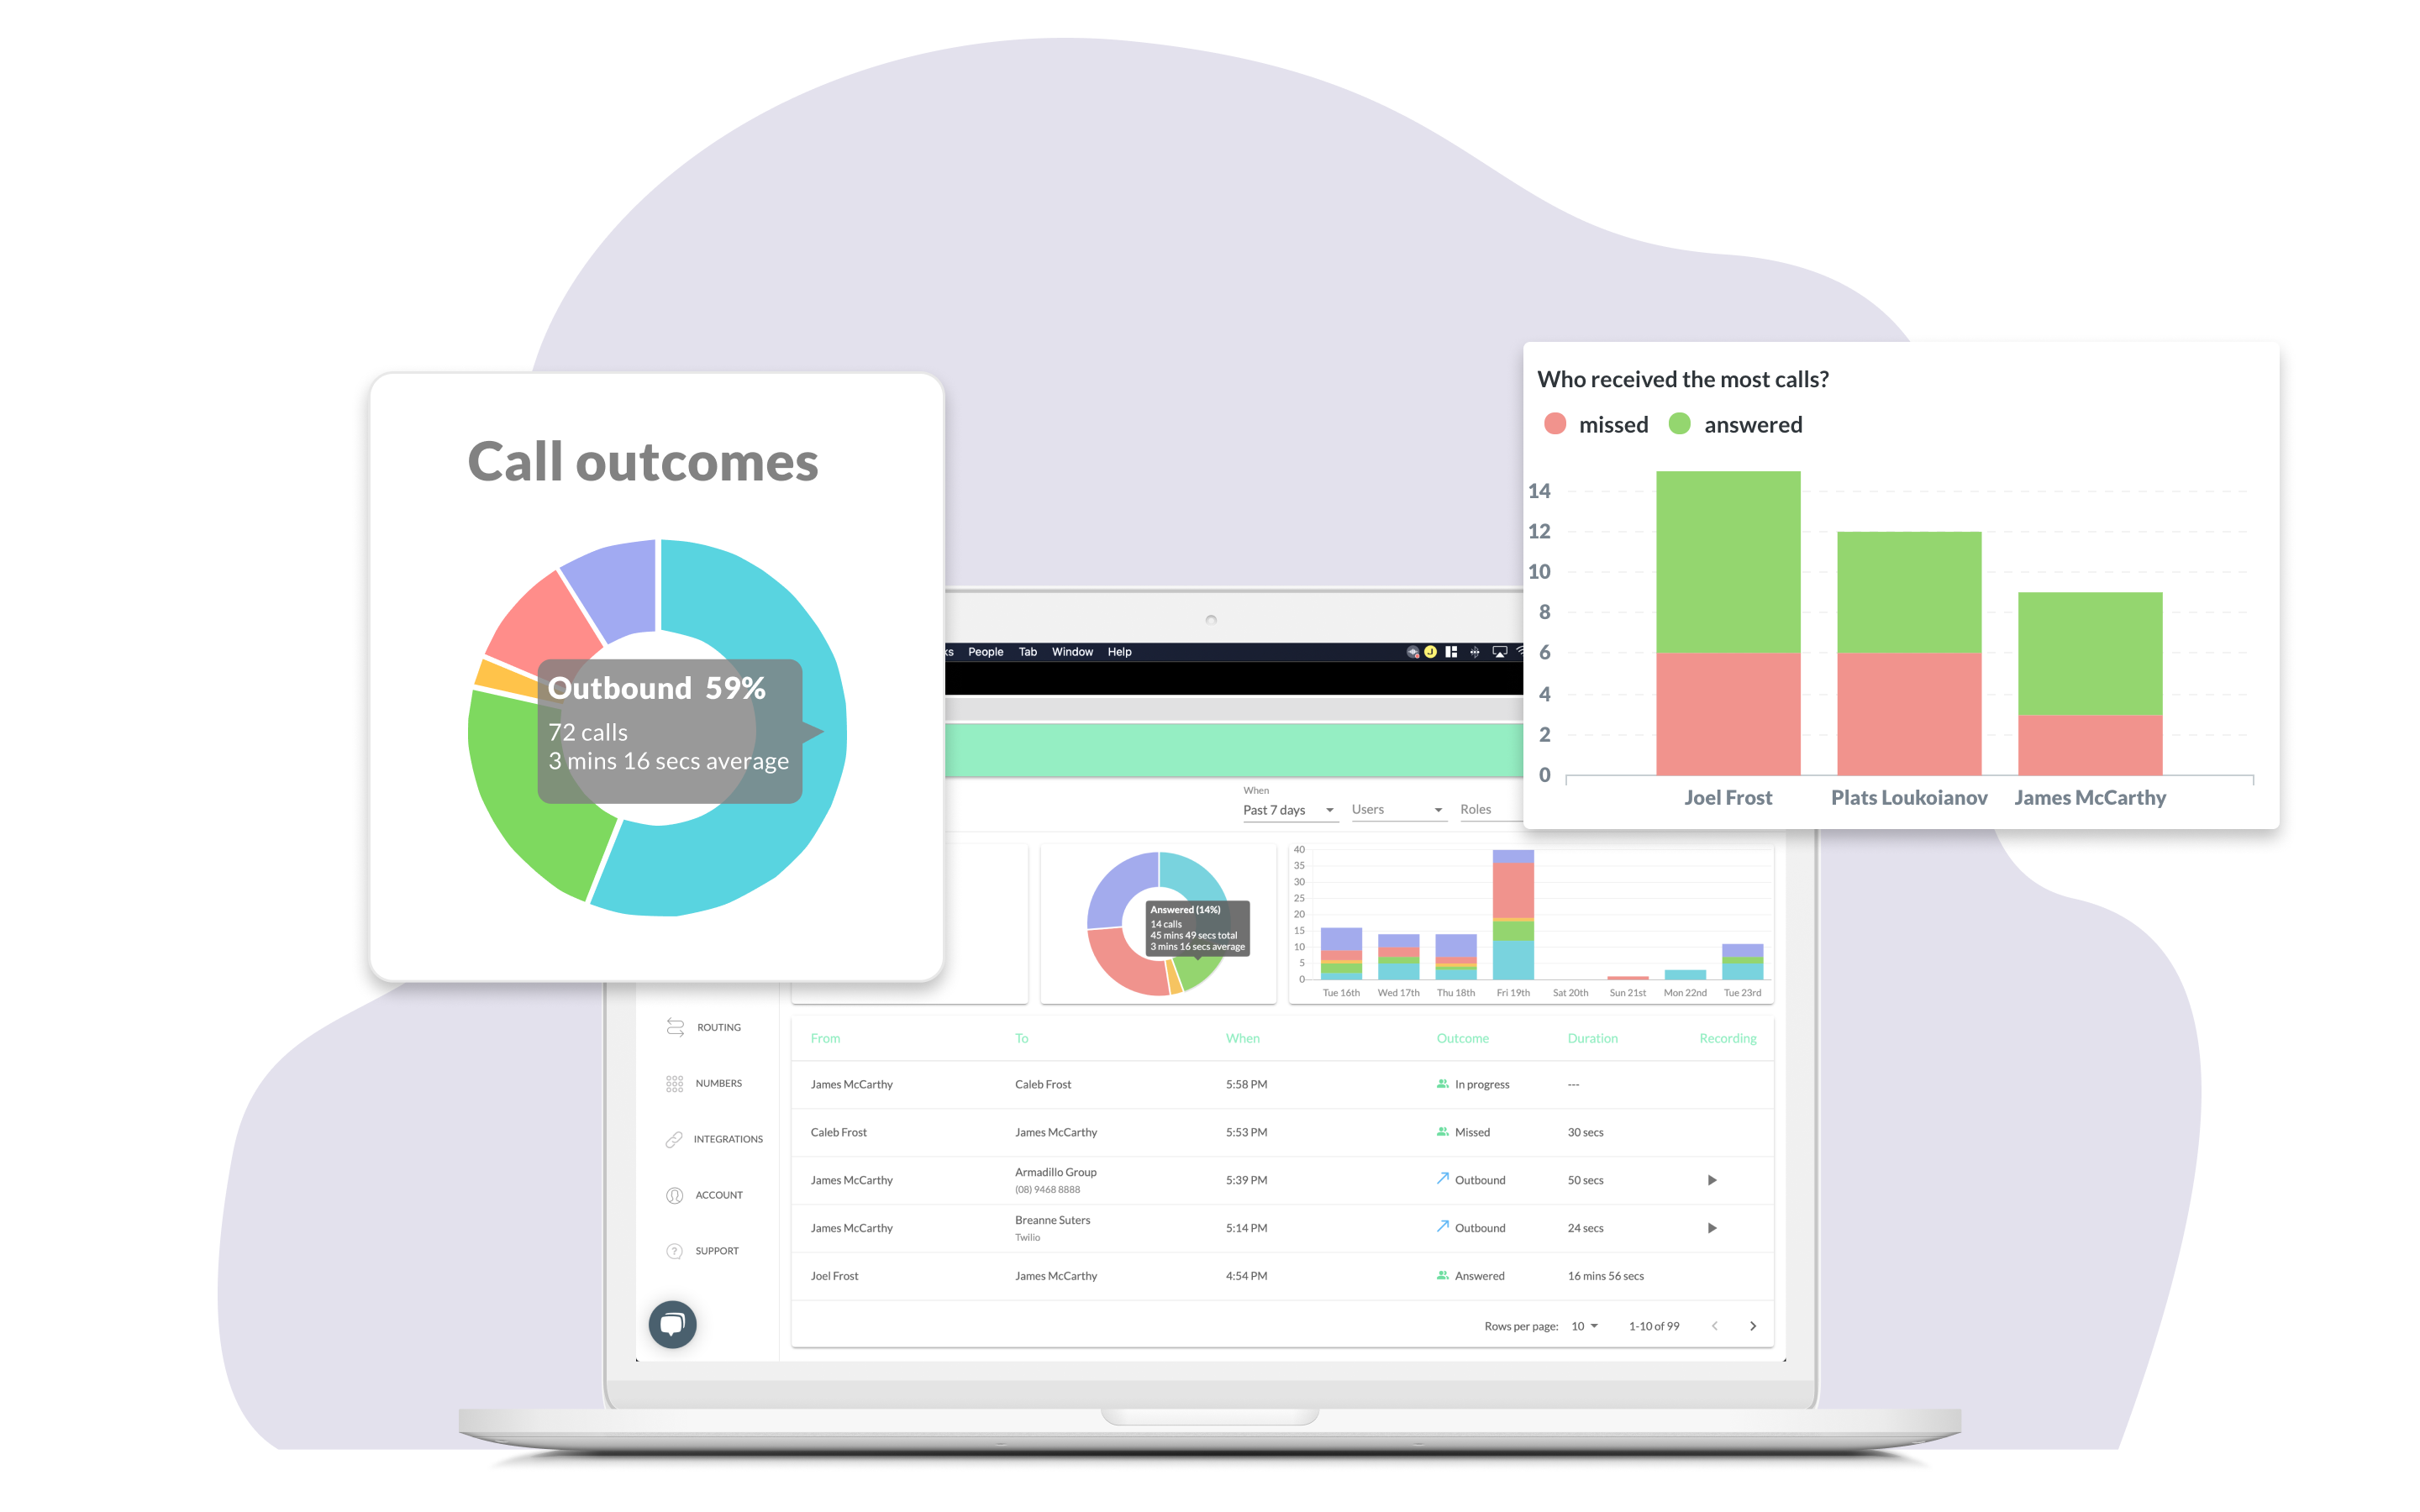 Cradles admin dashboard showing images and graphs of call data, call outcomes and previous call information